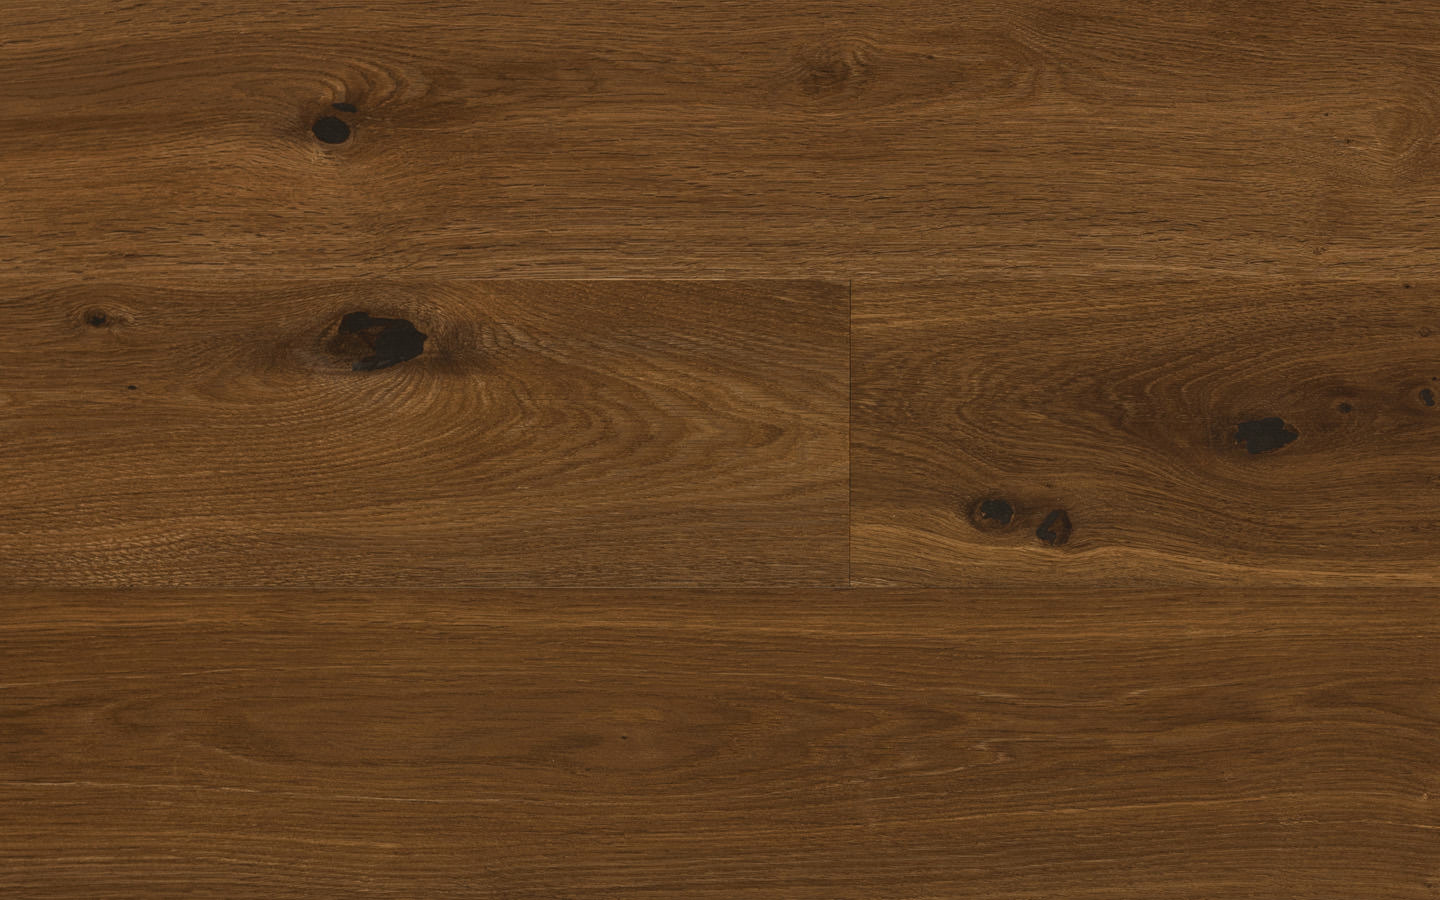 Château by adler - Oak Fumé G30 rustico wire brushed natural oiled - 19 x 180-350 x 1800-5000 mm